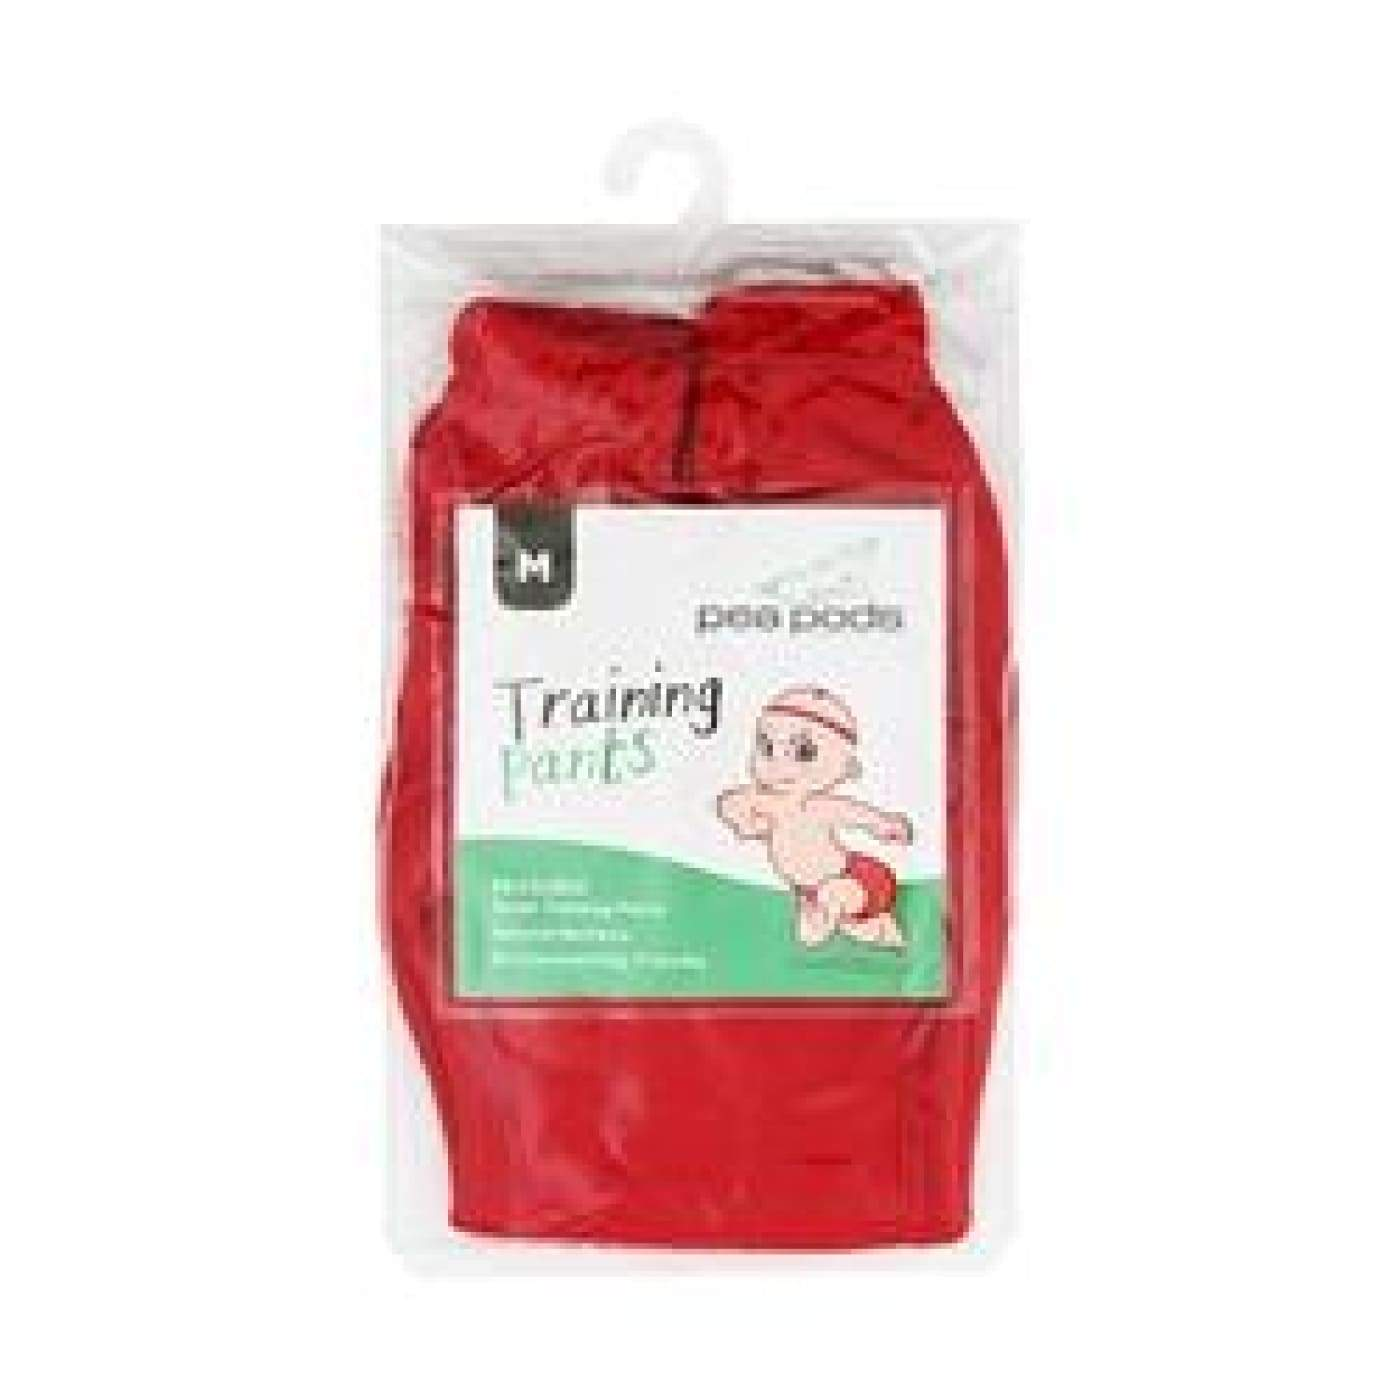 Pea Pods Training Pants Small - Racing Red - BATHTIME & CHANGING - NAPPIES/WIPES/ACC ECO RANGE